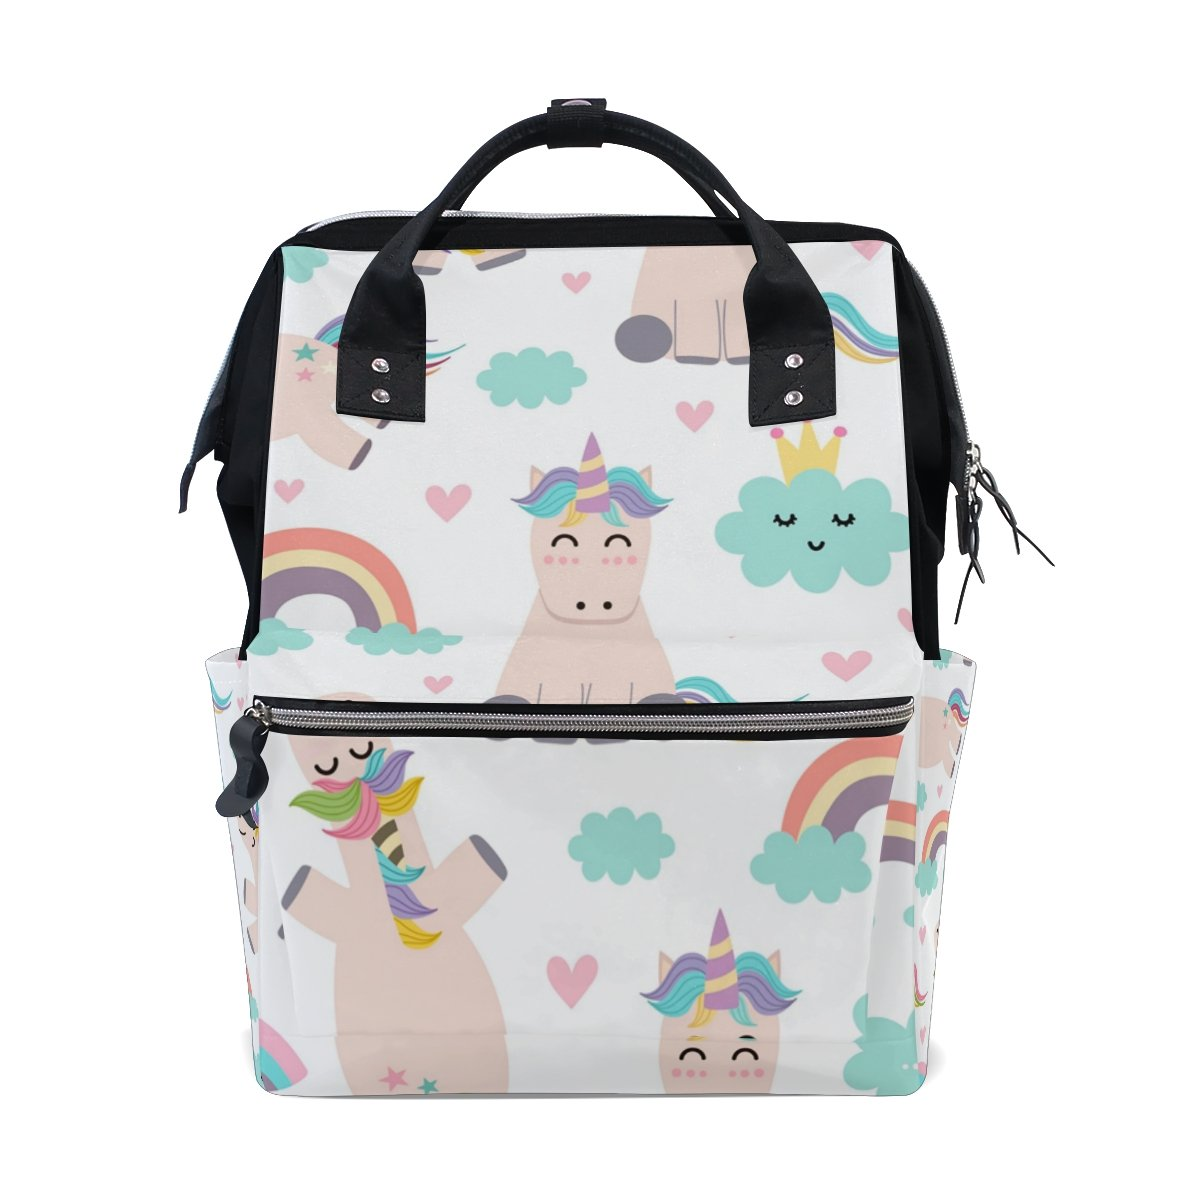 9ae78d4e3f12 Amazon.com   MAPOLO Unicorn Cloud Rainbow Diaper Backpack Large Capacity  Baby Bag Multi-Function Nappy Bags Travel Mom Backpack for Baby Care   Baby